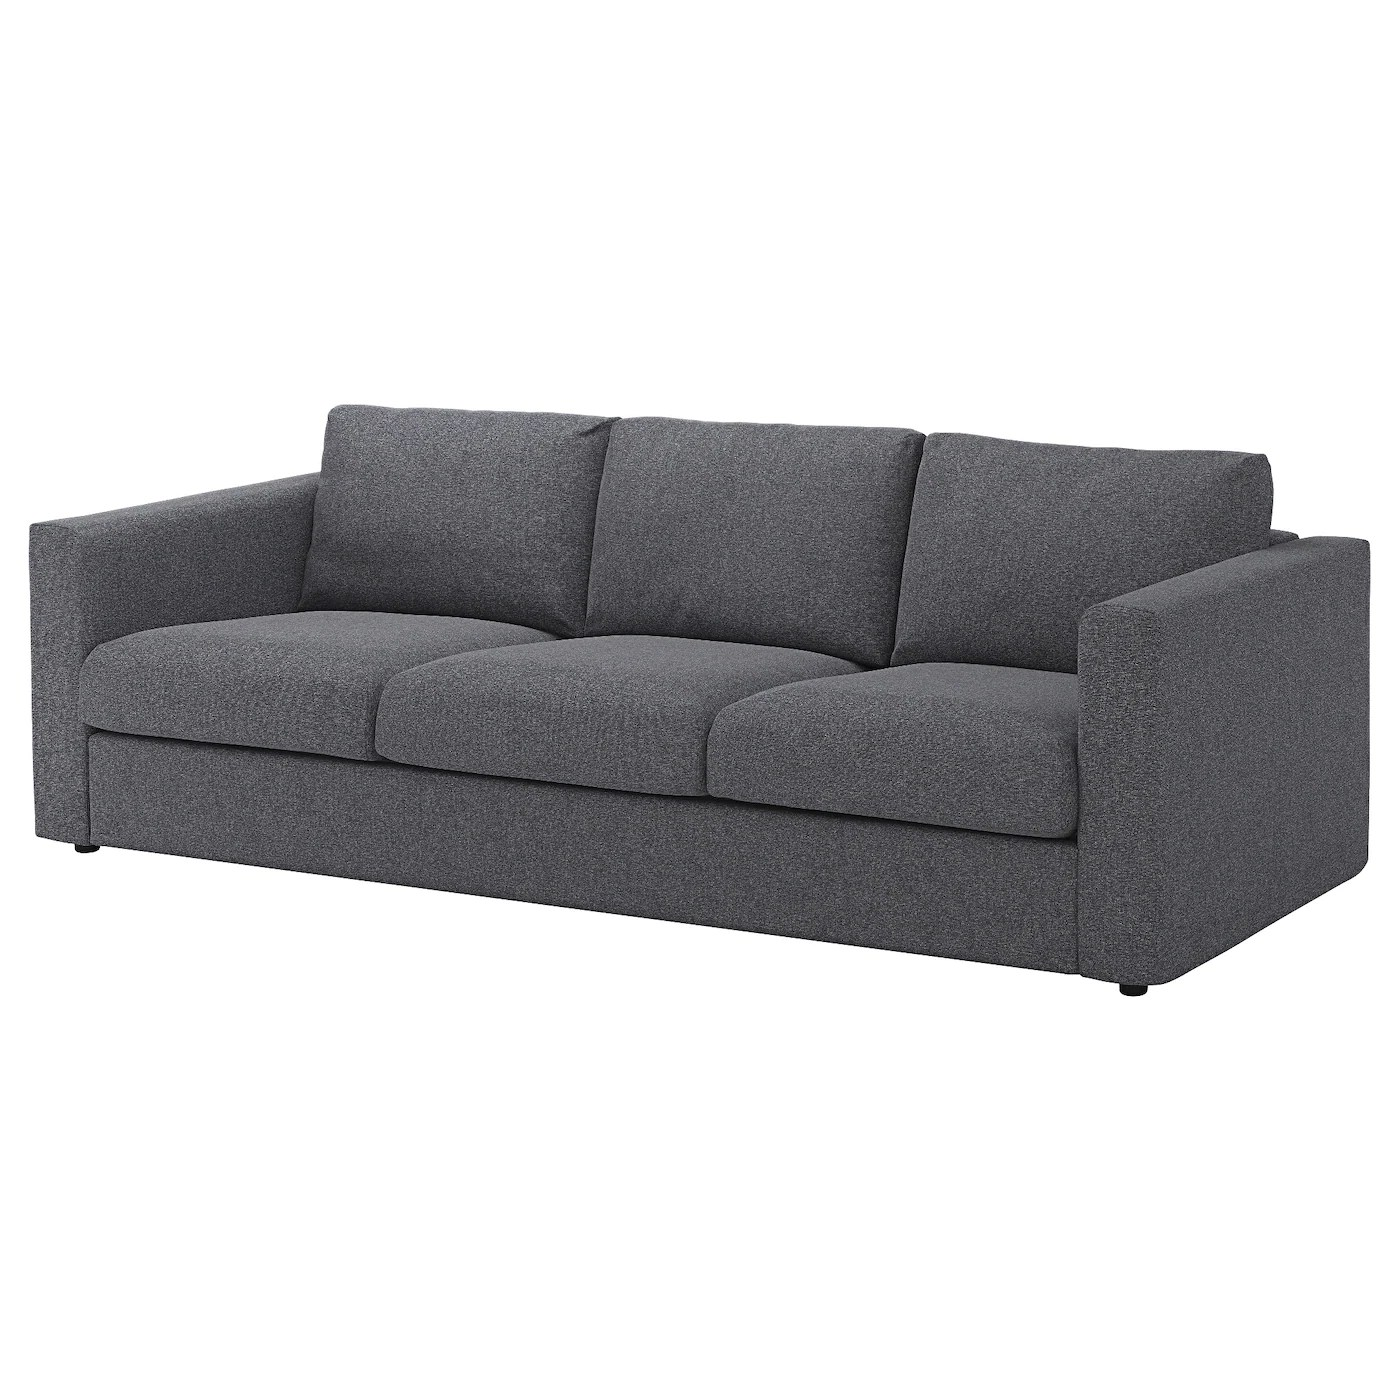 Sofa Sales In Glasgow Fabric Sofas Ikea